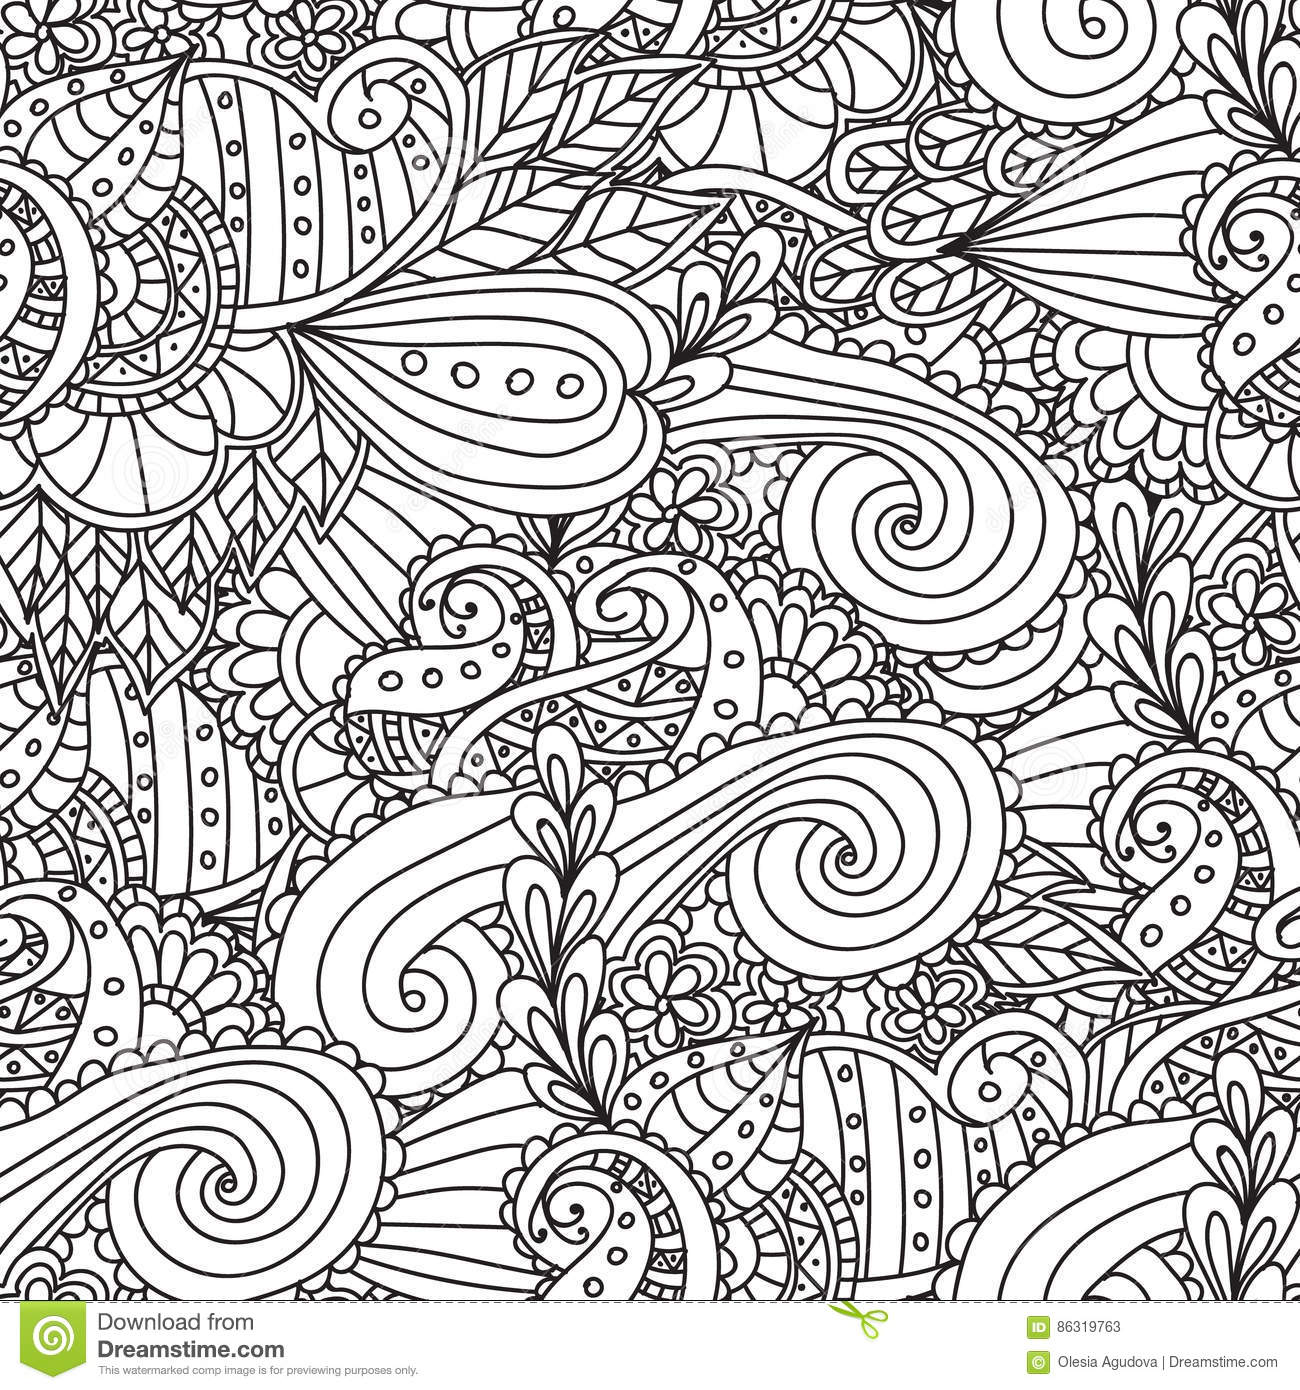 Coloring Pages For AdultsDecorative